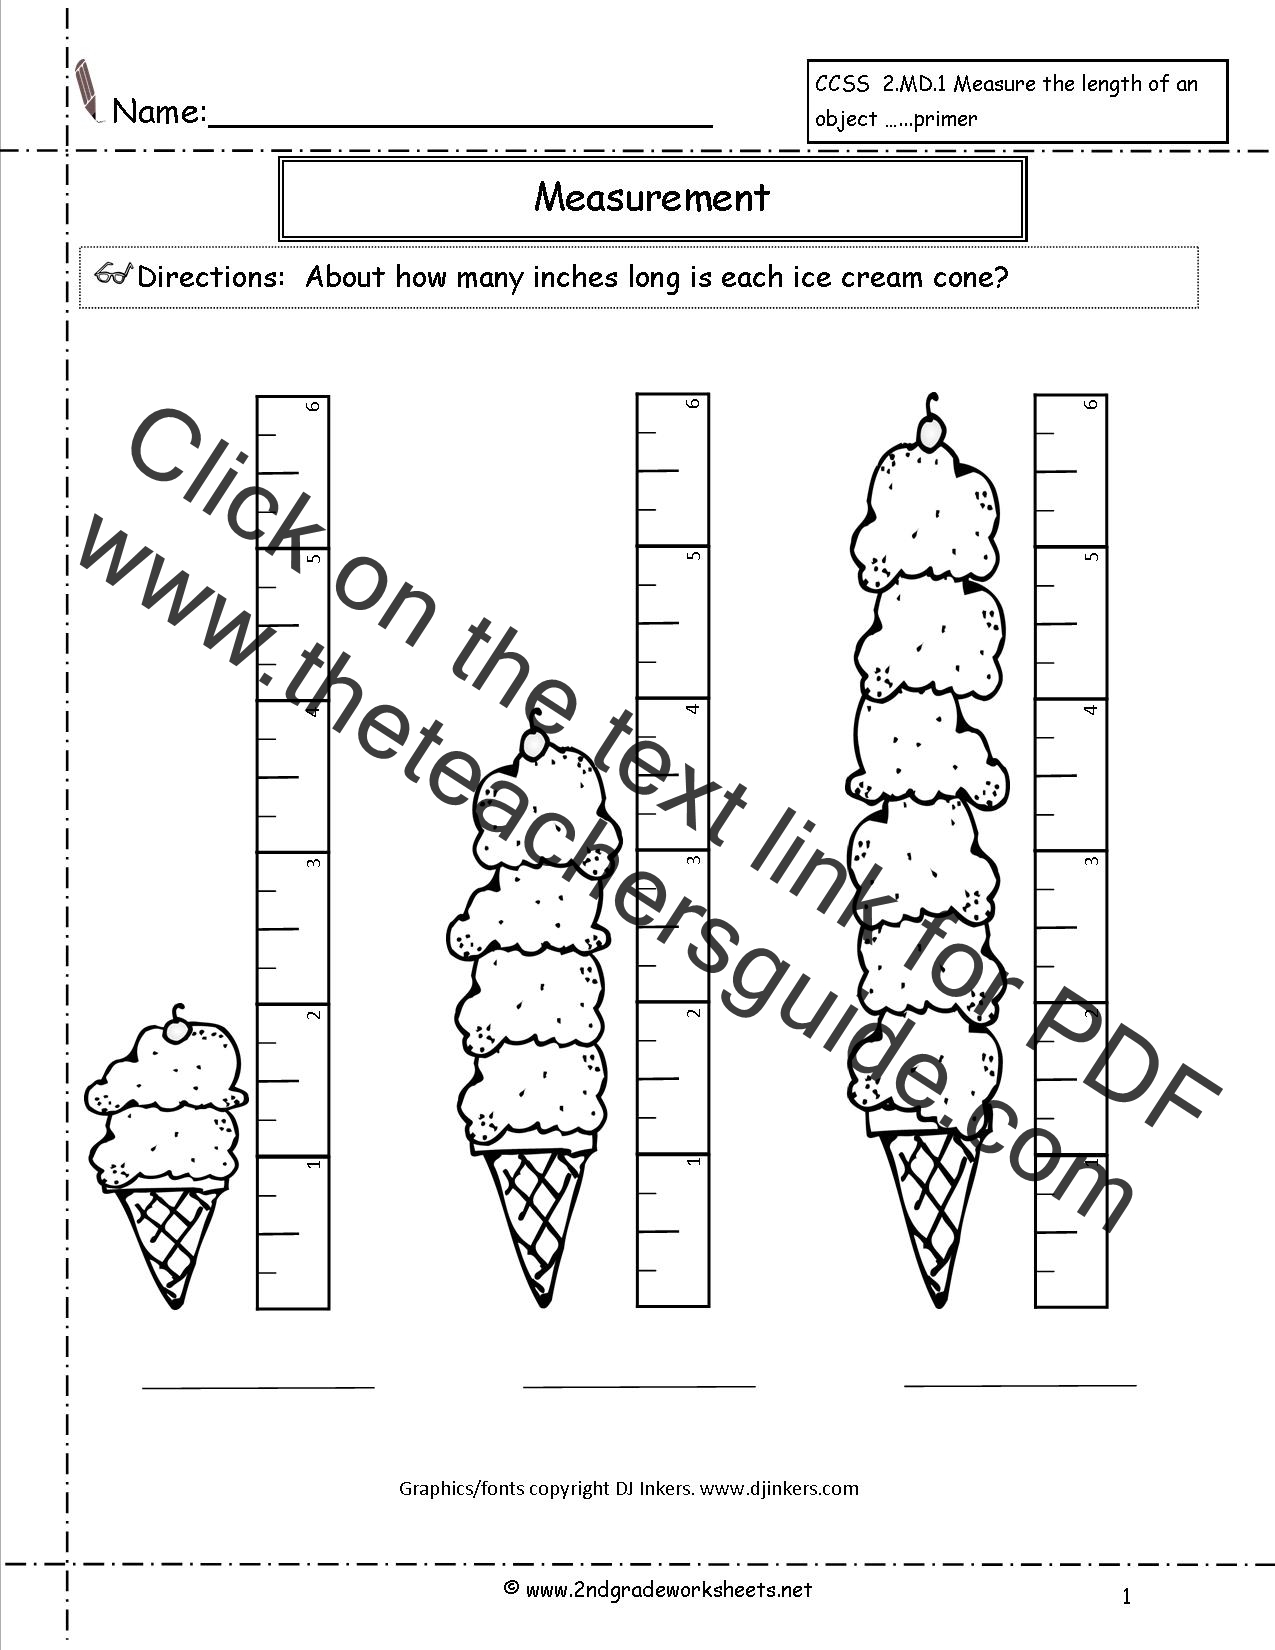 worksheet Measurement In Inches Worksheets ccss 2 md 1 worksheets measuring worksheet